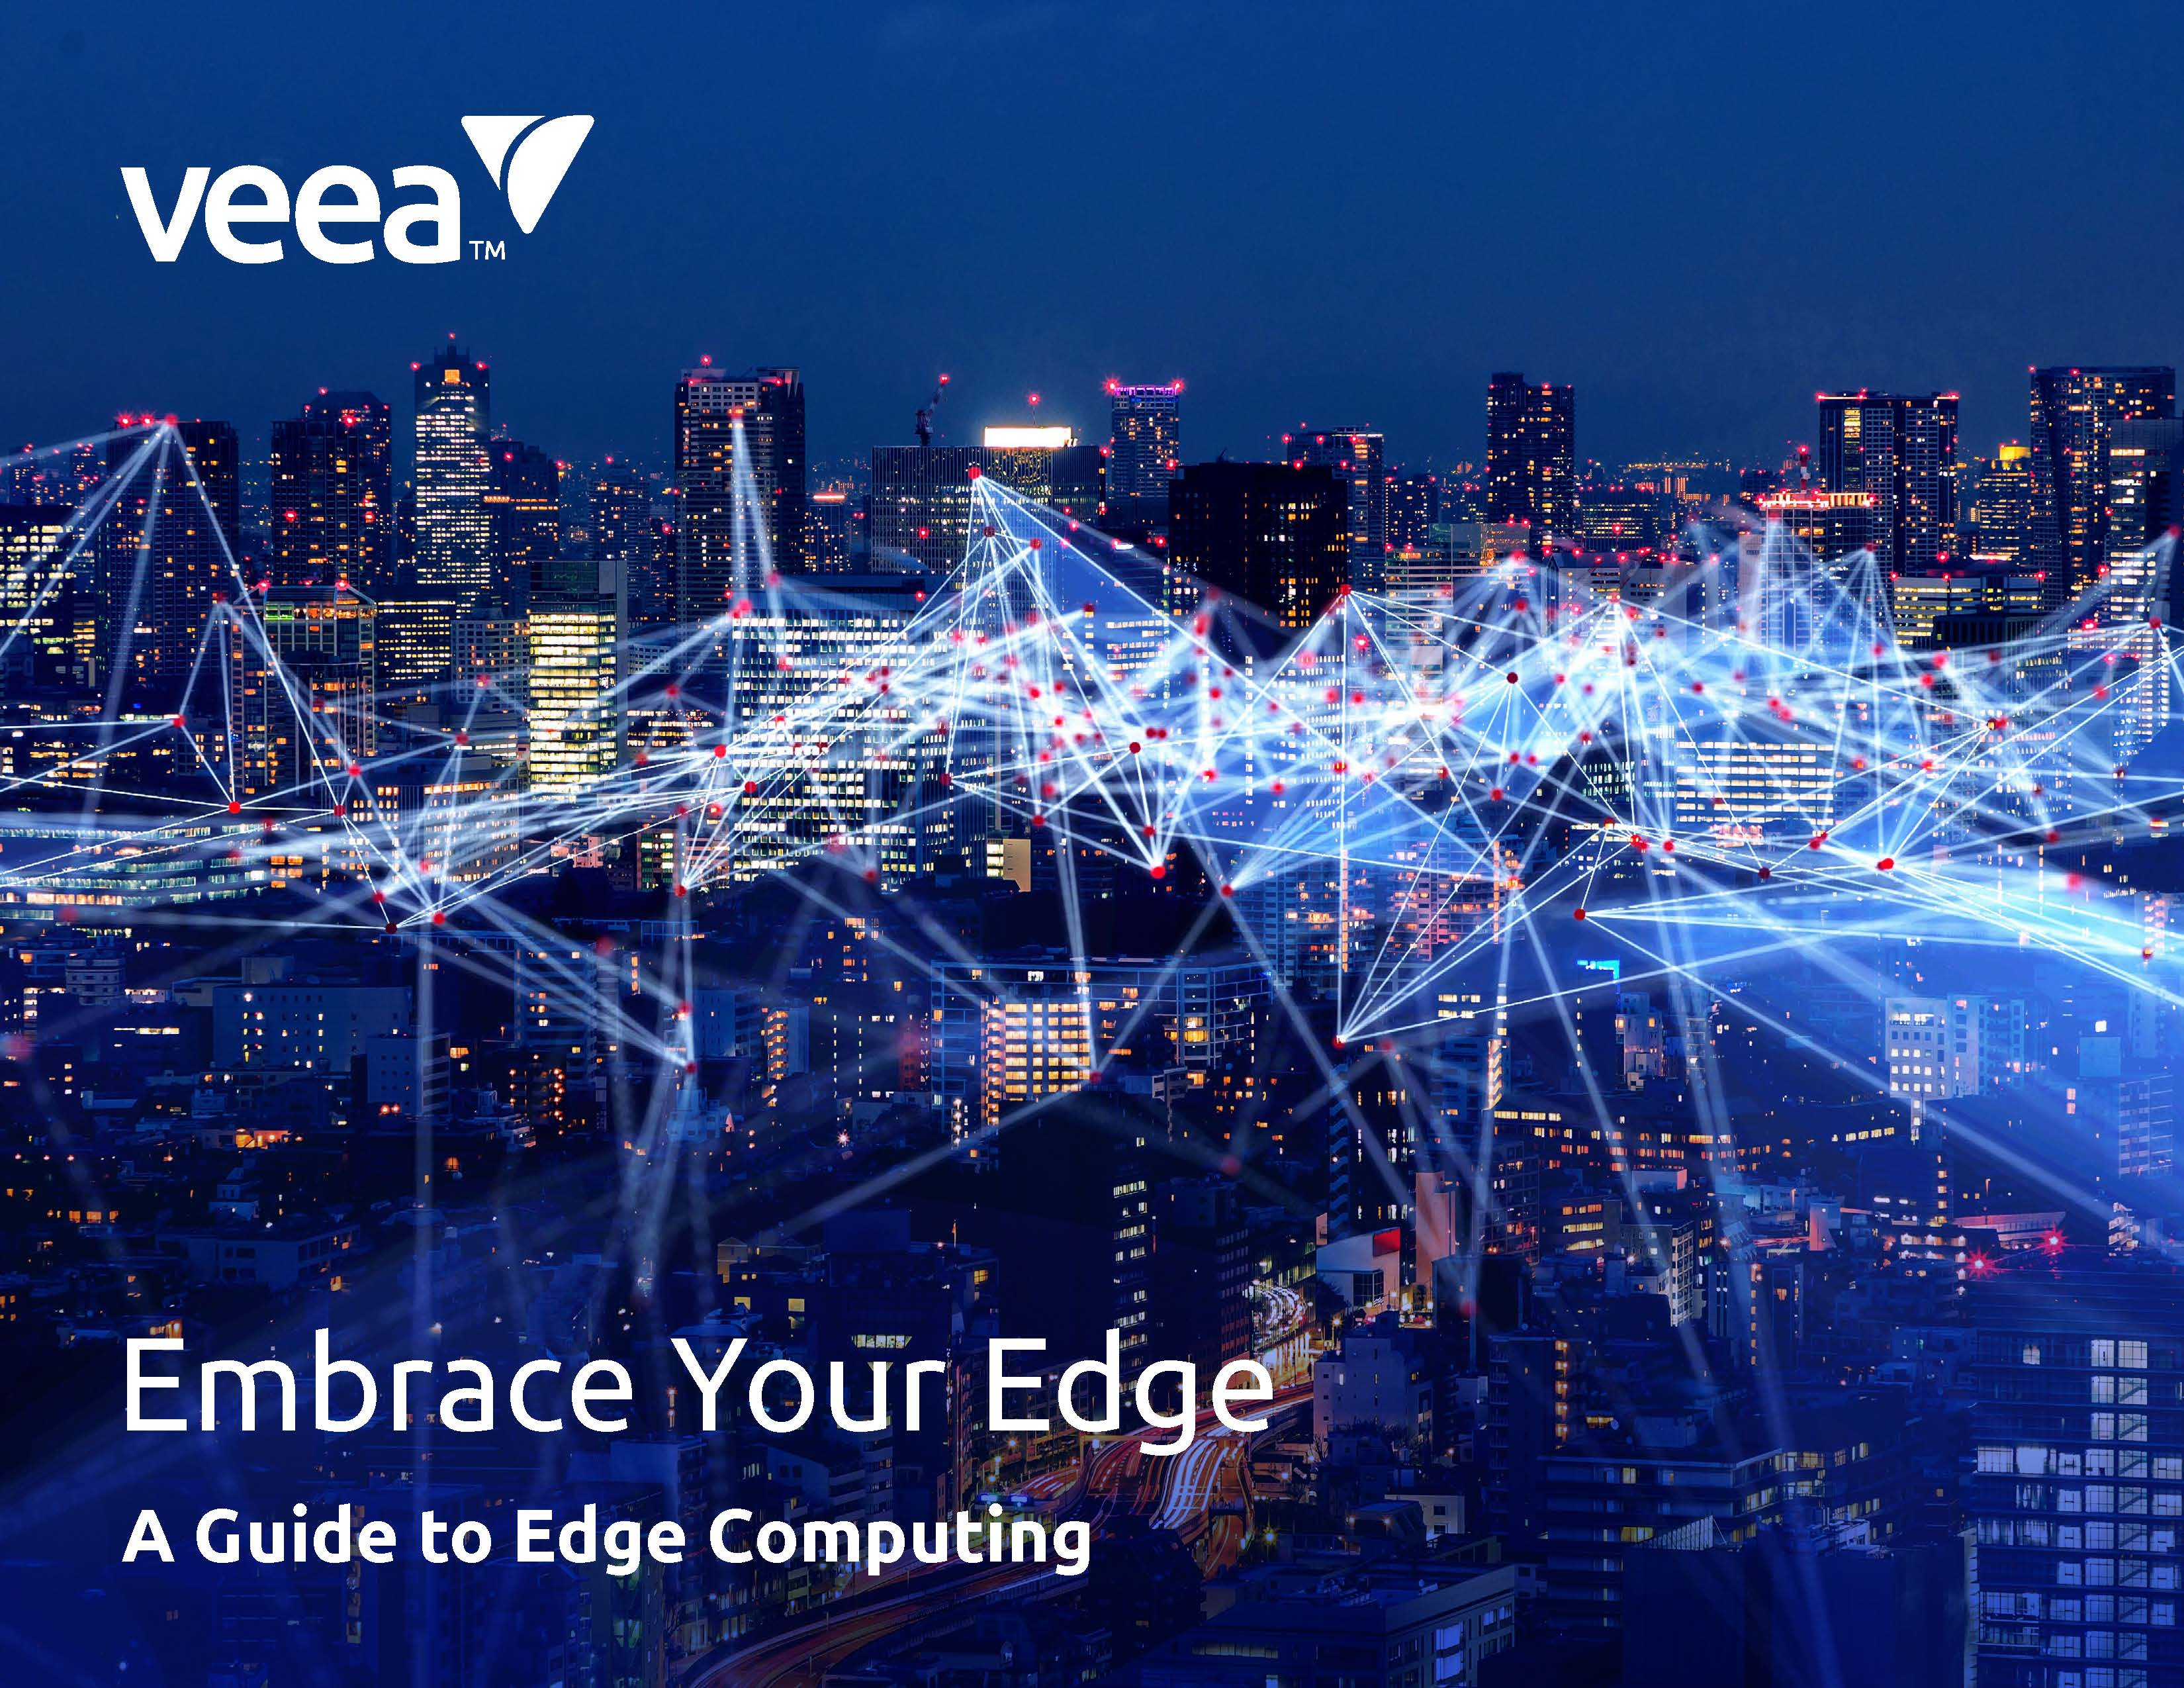 ebook_embrace_your_edge_cover